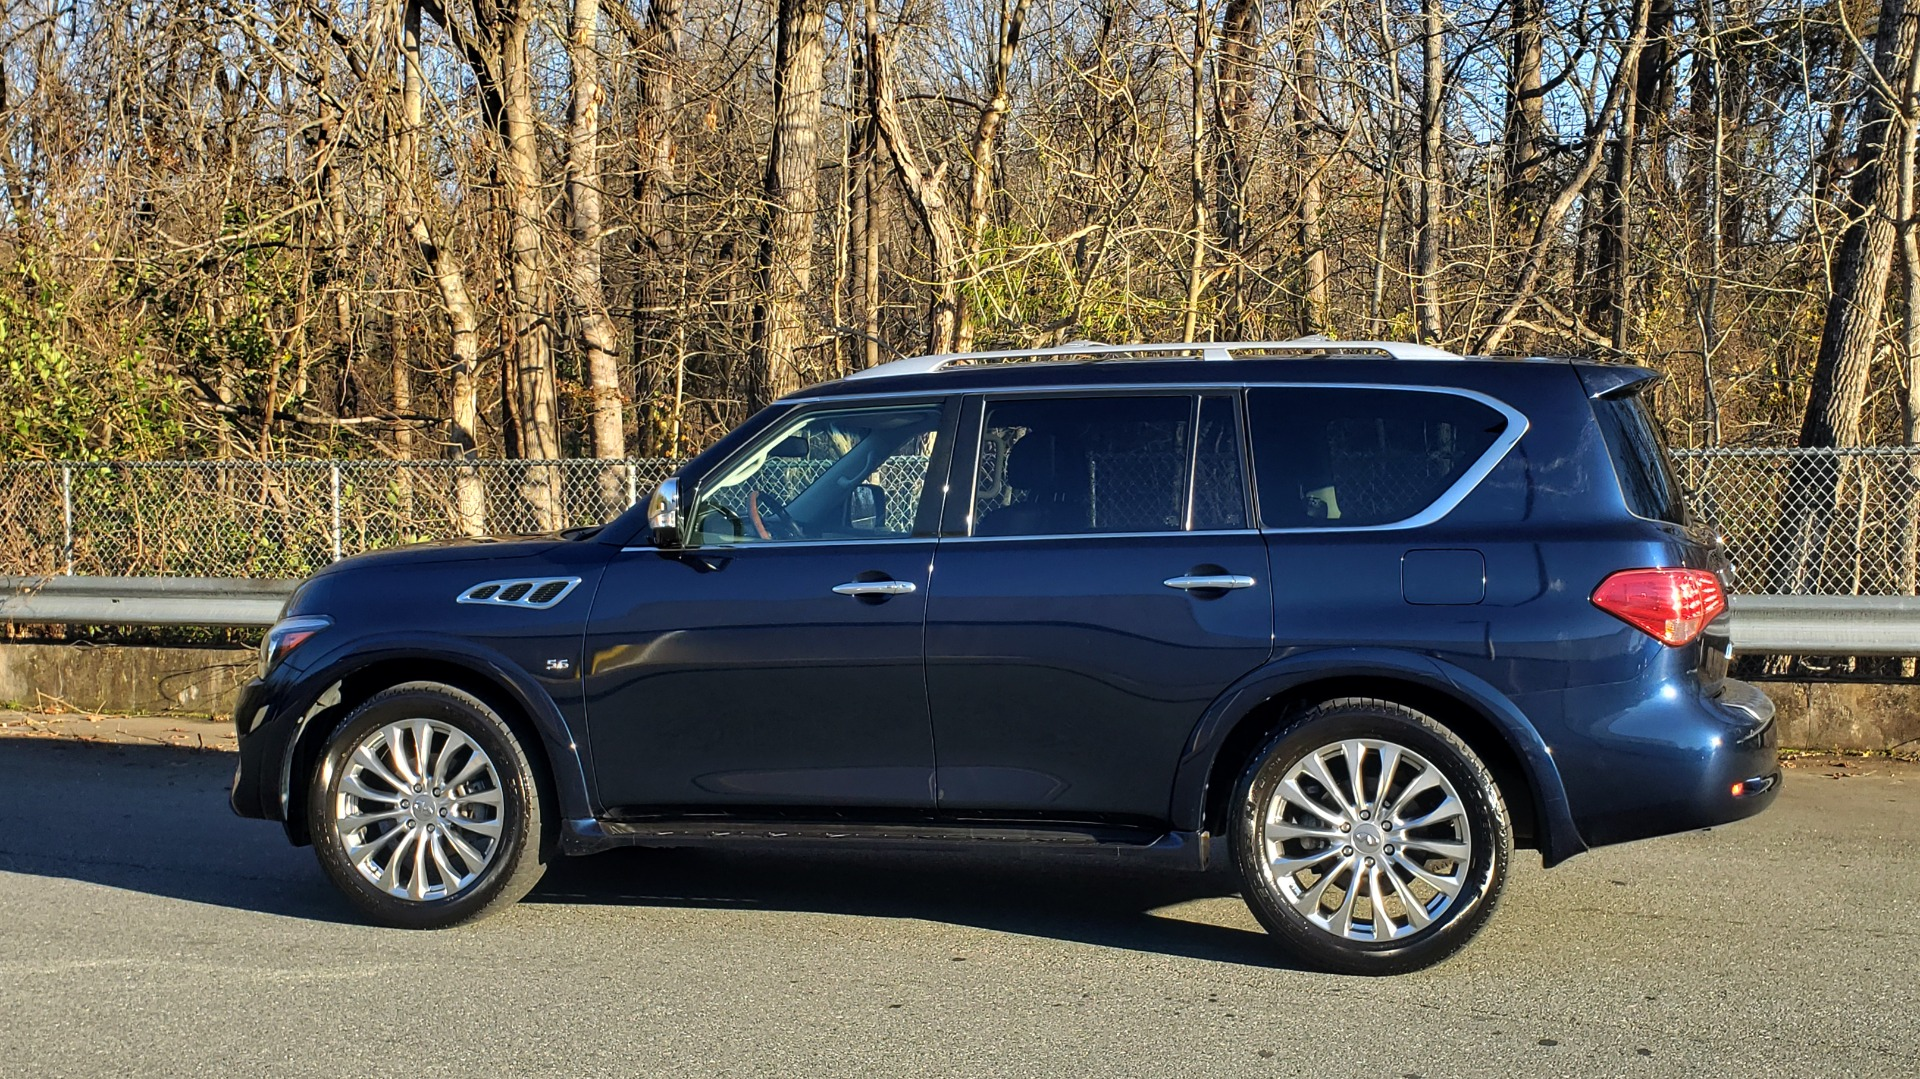 Used 2017 INFINITI QX80 4WD / NAV / SUNROOF / 3-ROW / THEATER PKG / REARVIEW for sale $46,495 at Formula Imports in Charlotte NC 28227 3